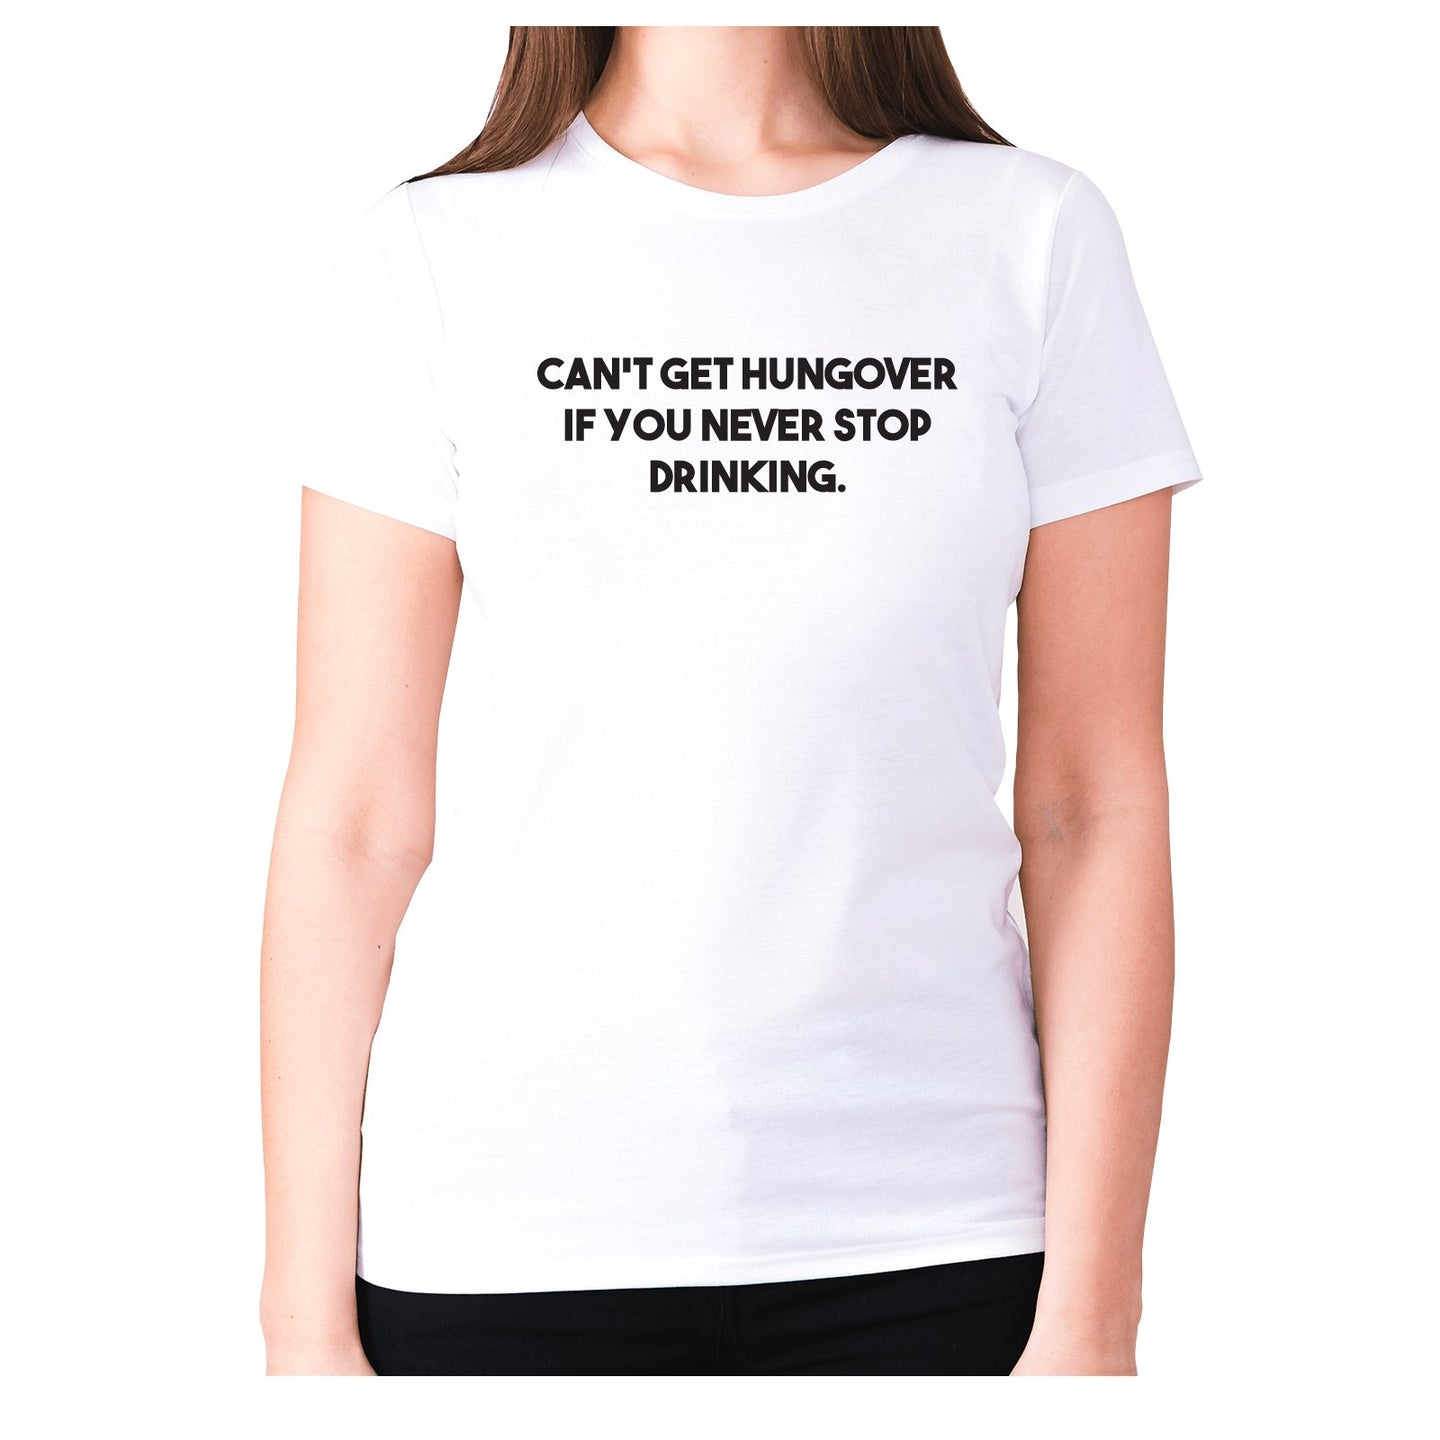 Can't get hungover if you never stop drinking - women's premium t-shirt - White / S - Graphic Gear